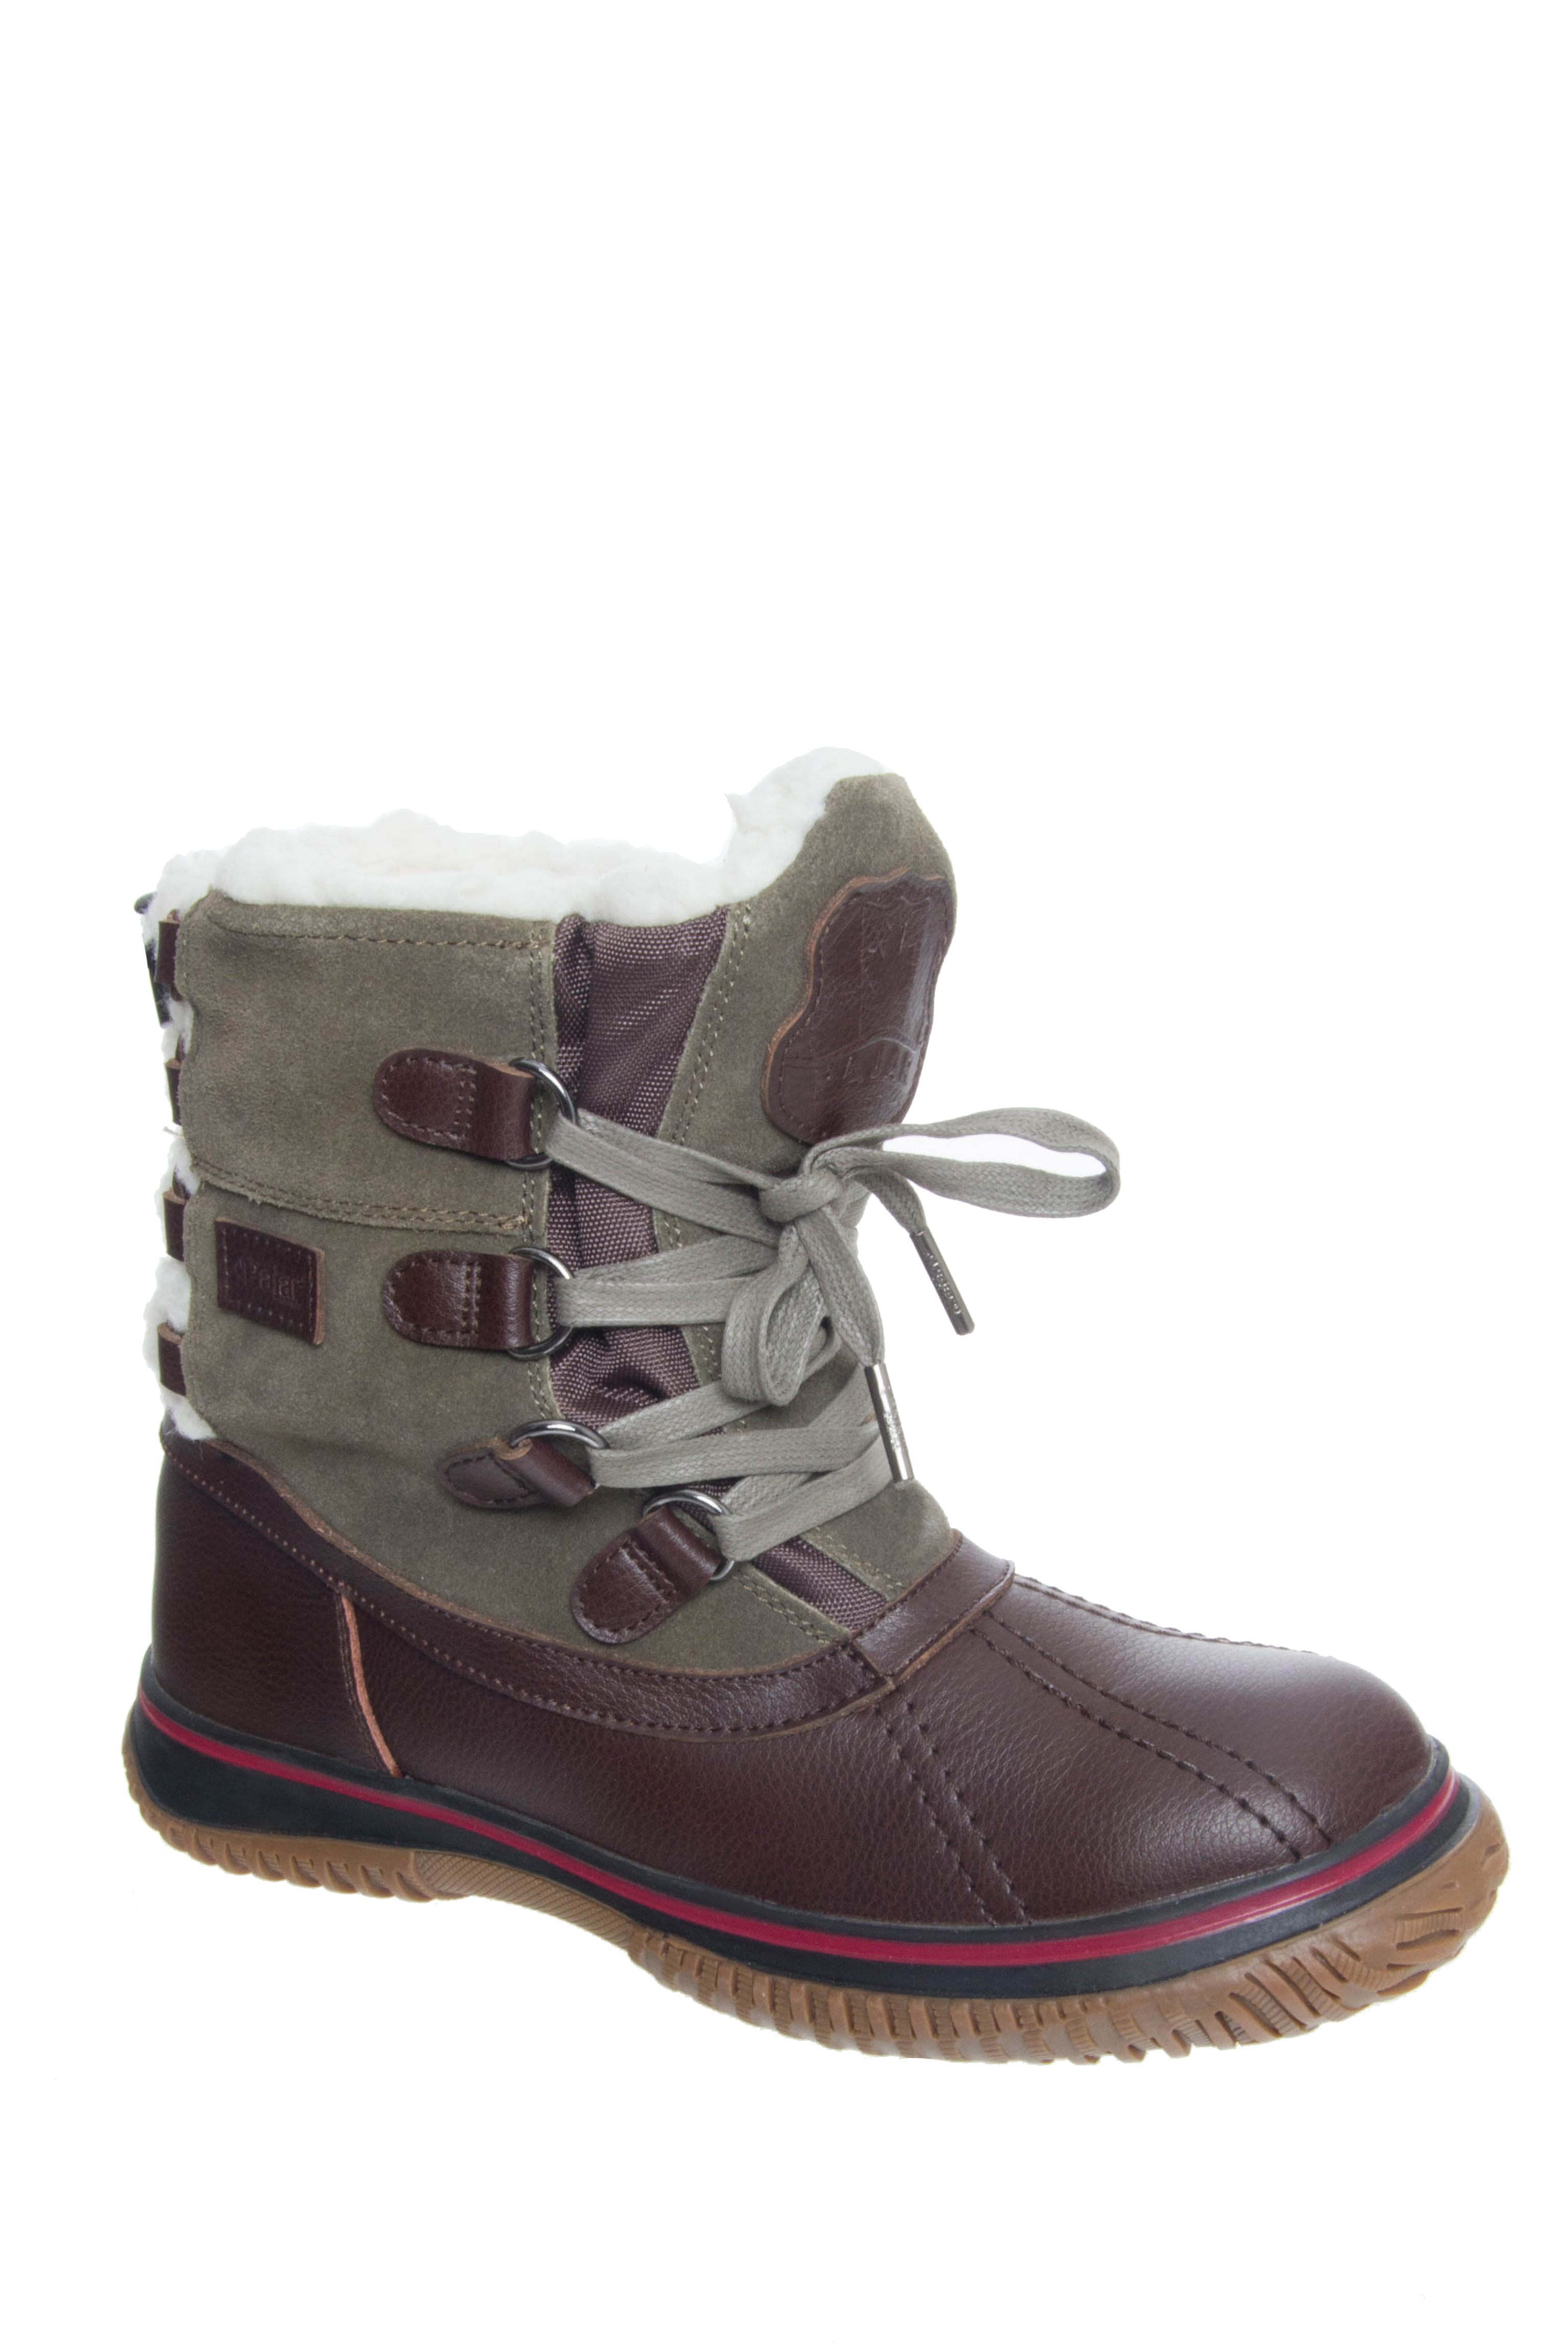 Pajar Iceland Snow Boots - Brown